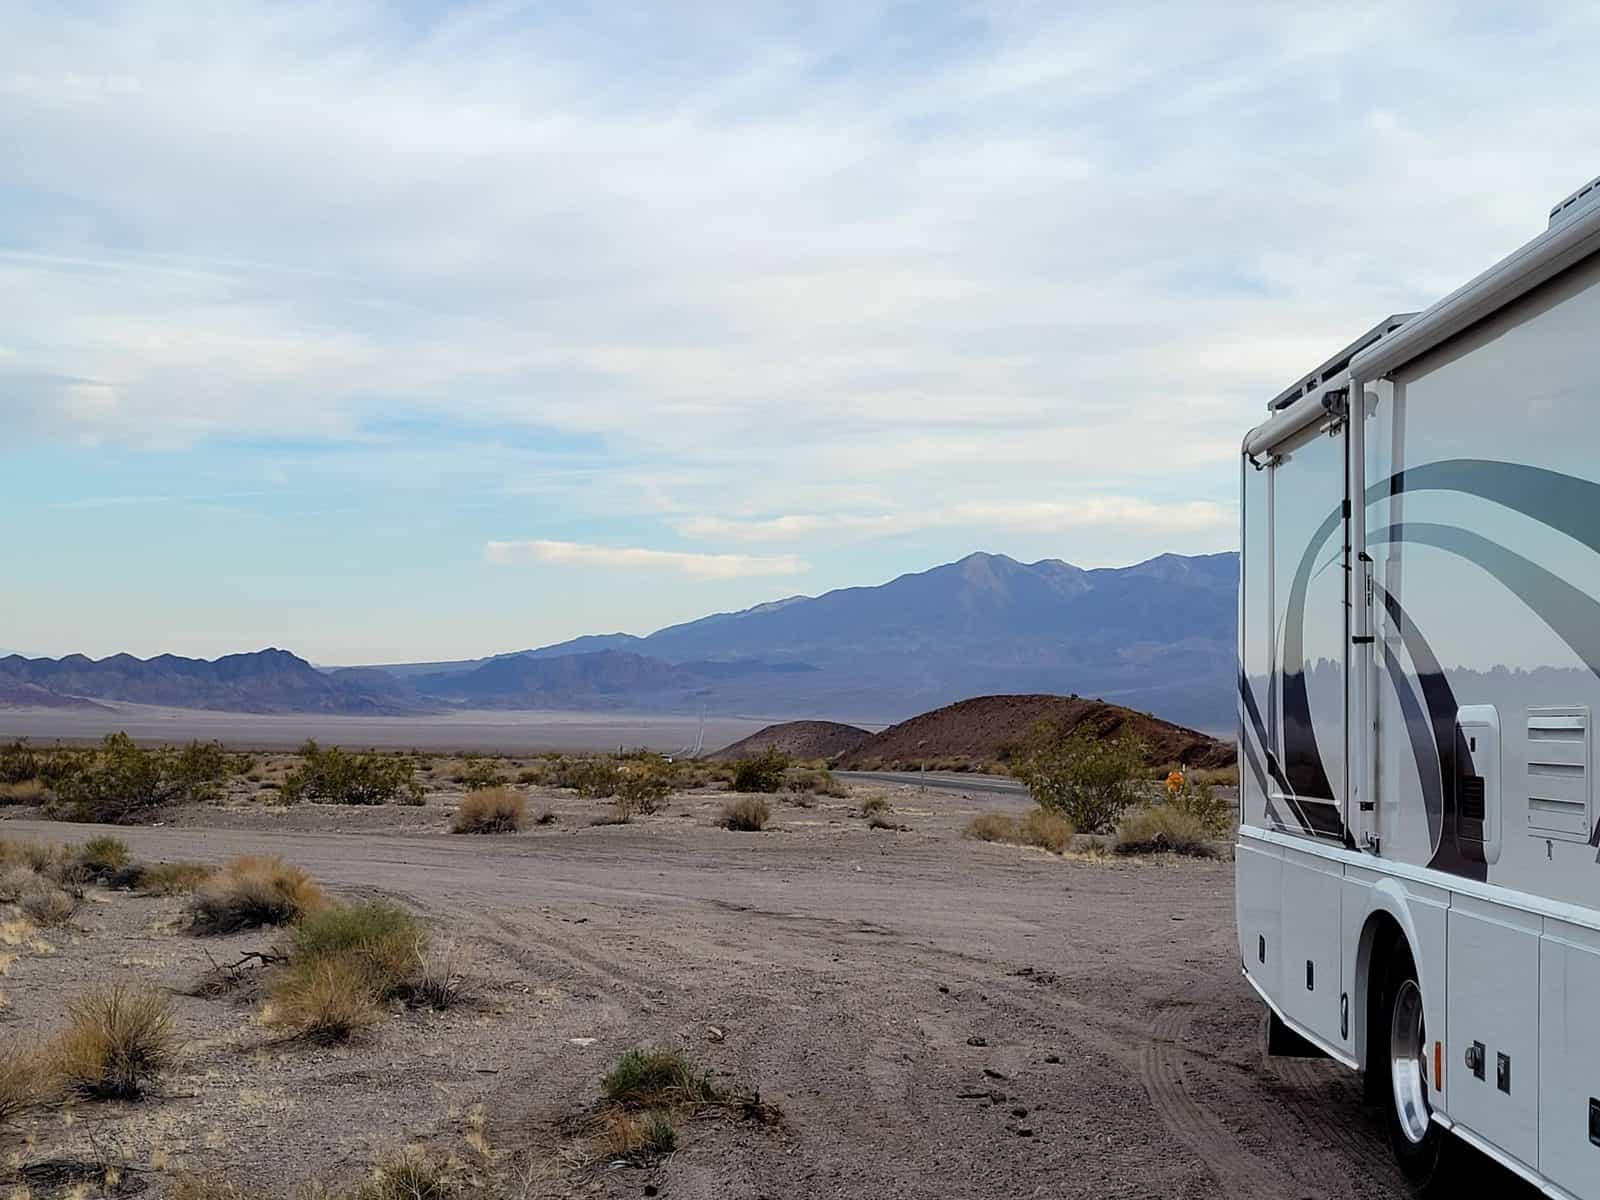 backcountry camping near death valley